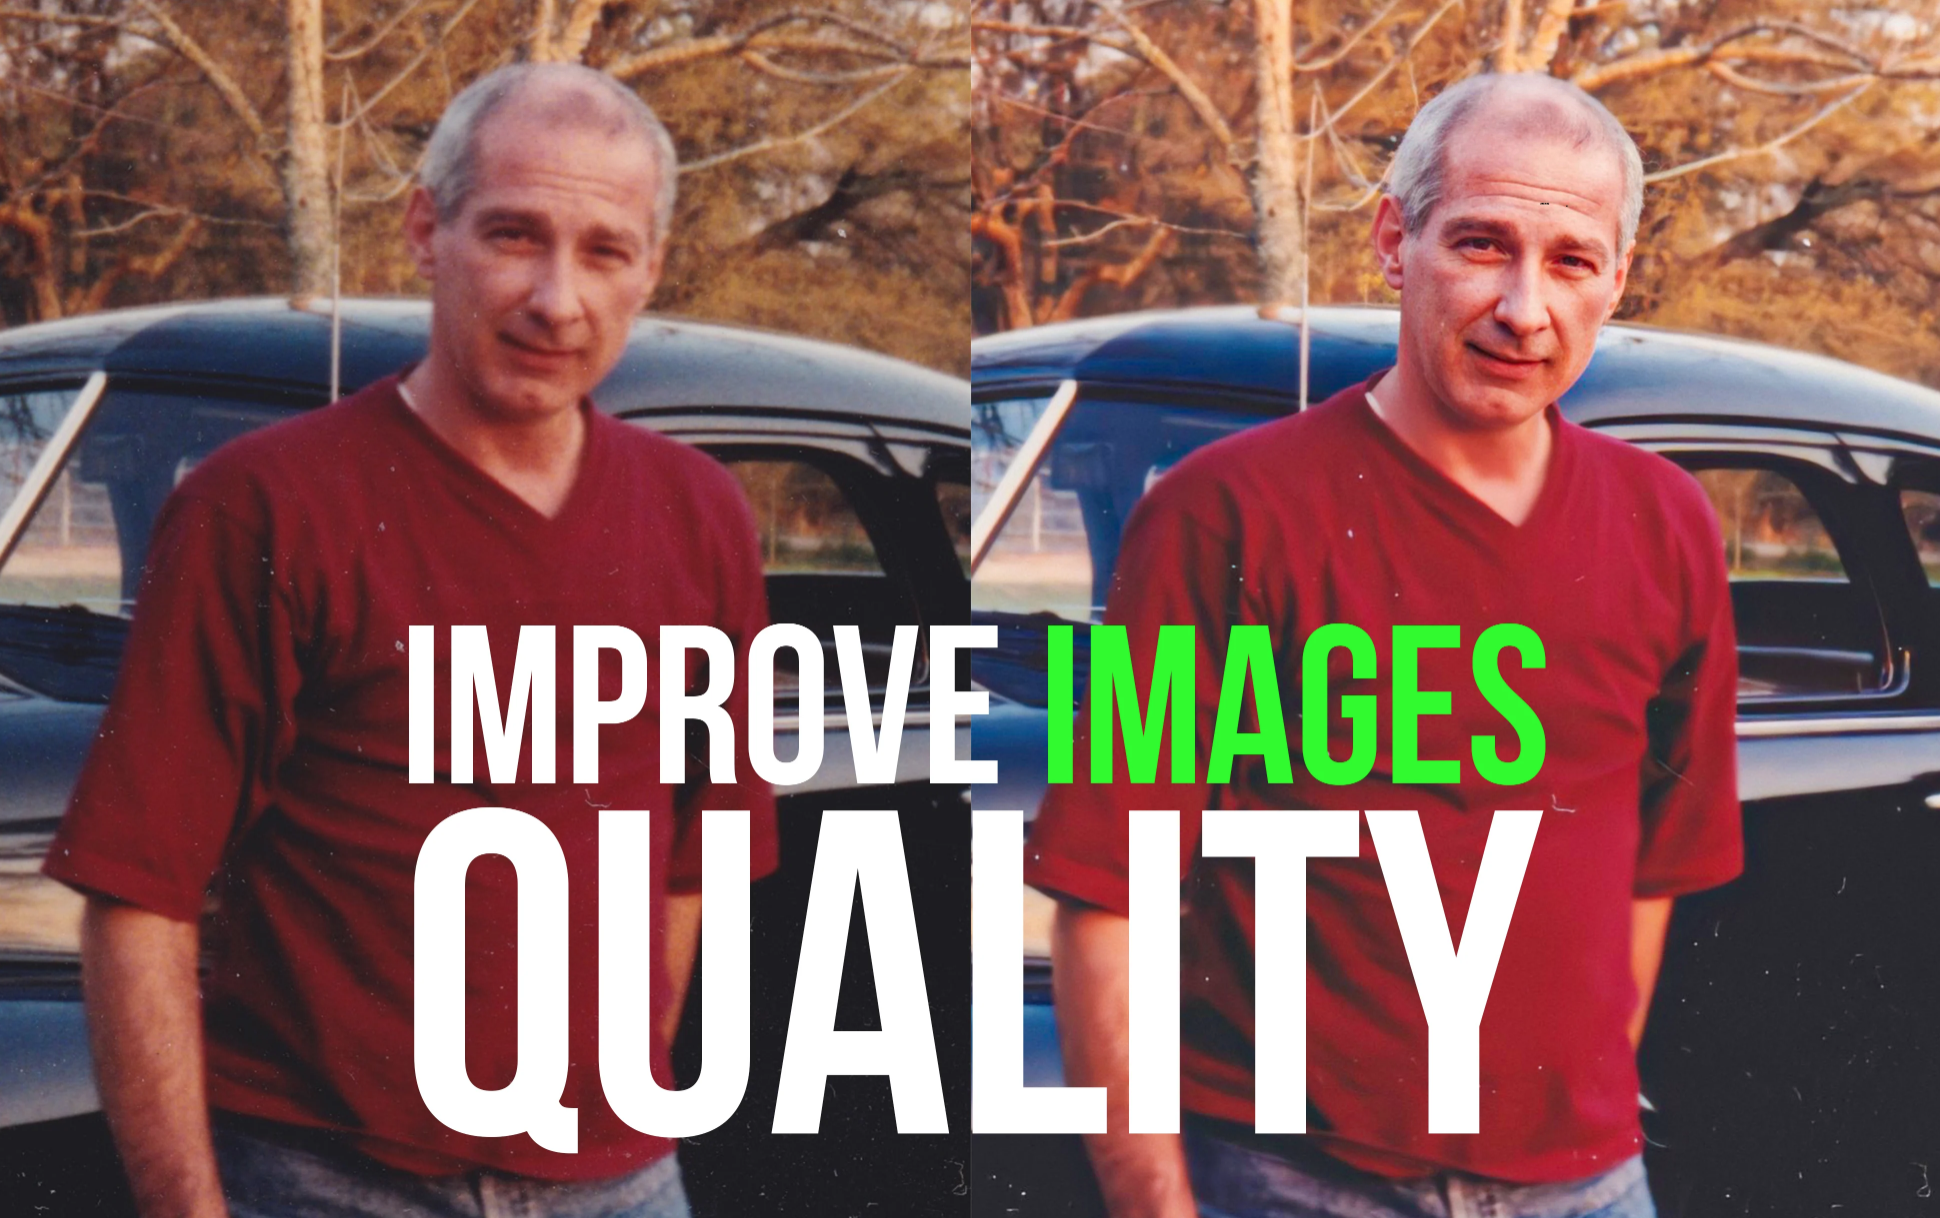 Enhance Upscale Images Quality In 2020 Improve Sharpen Image Image